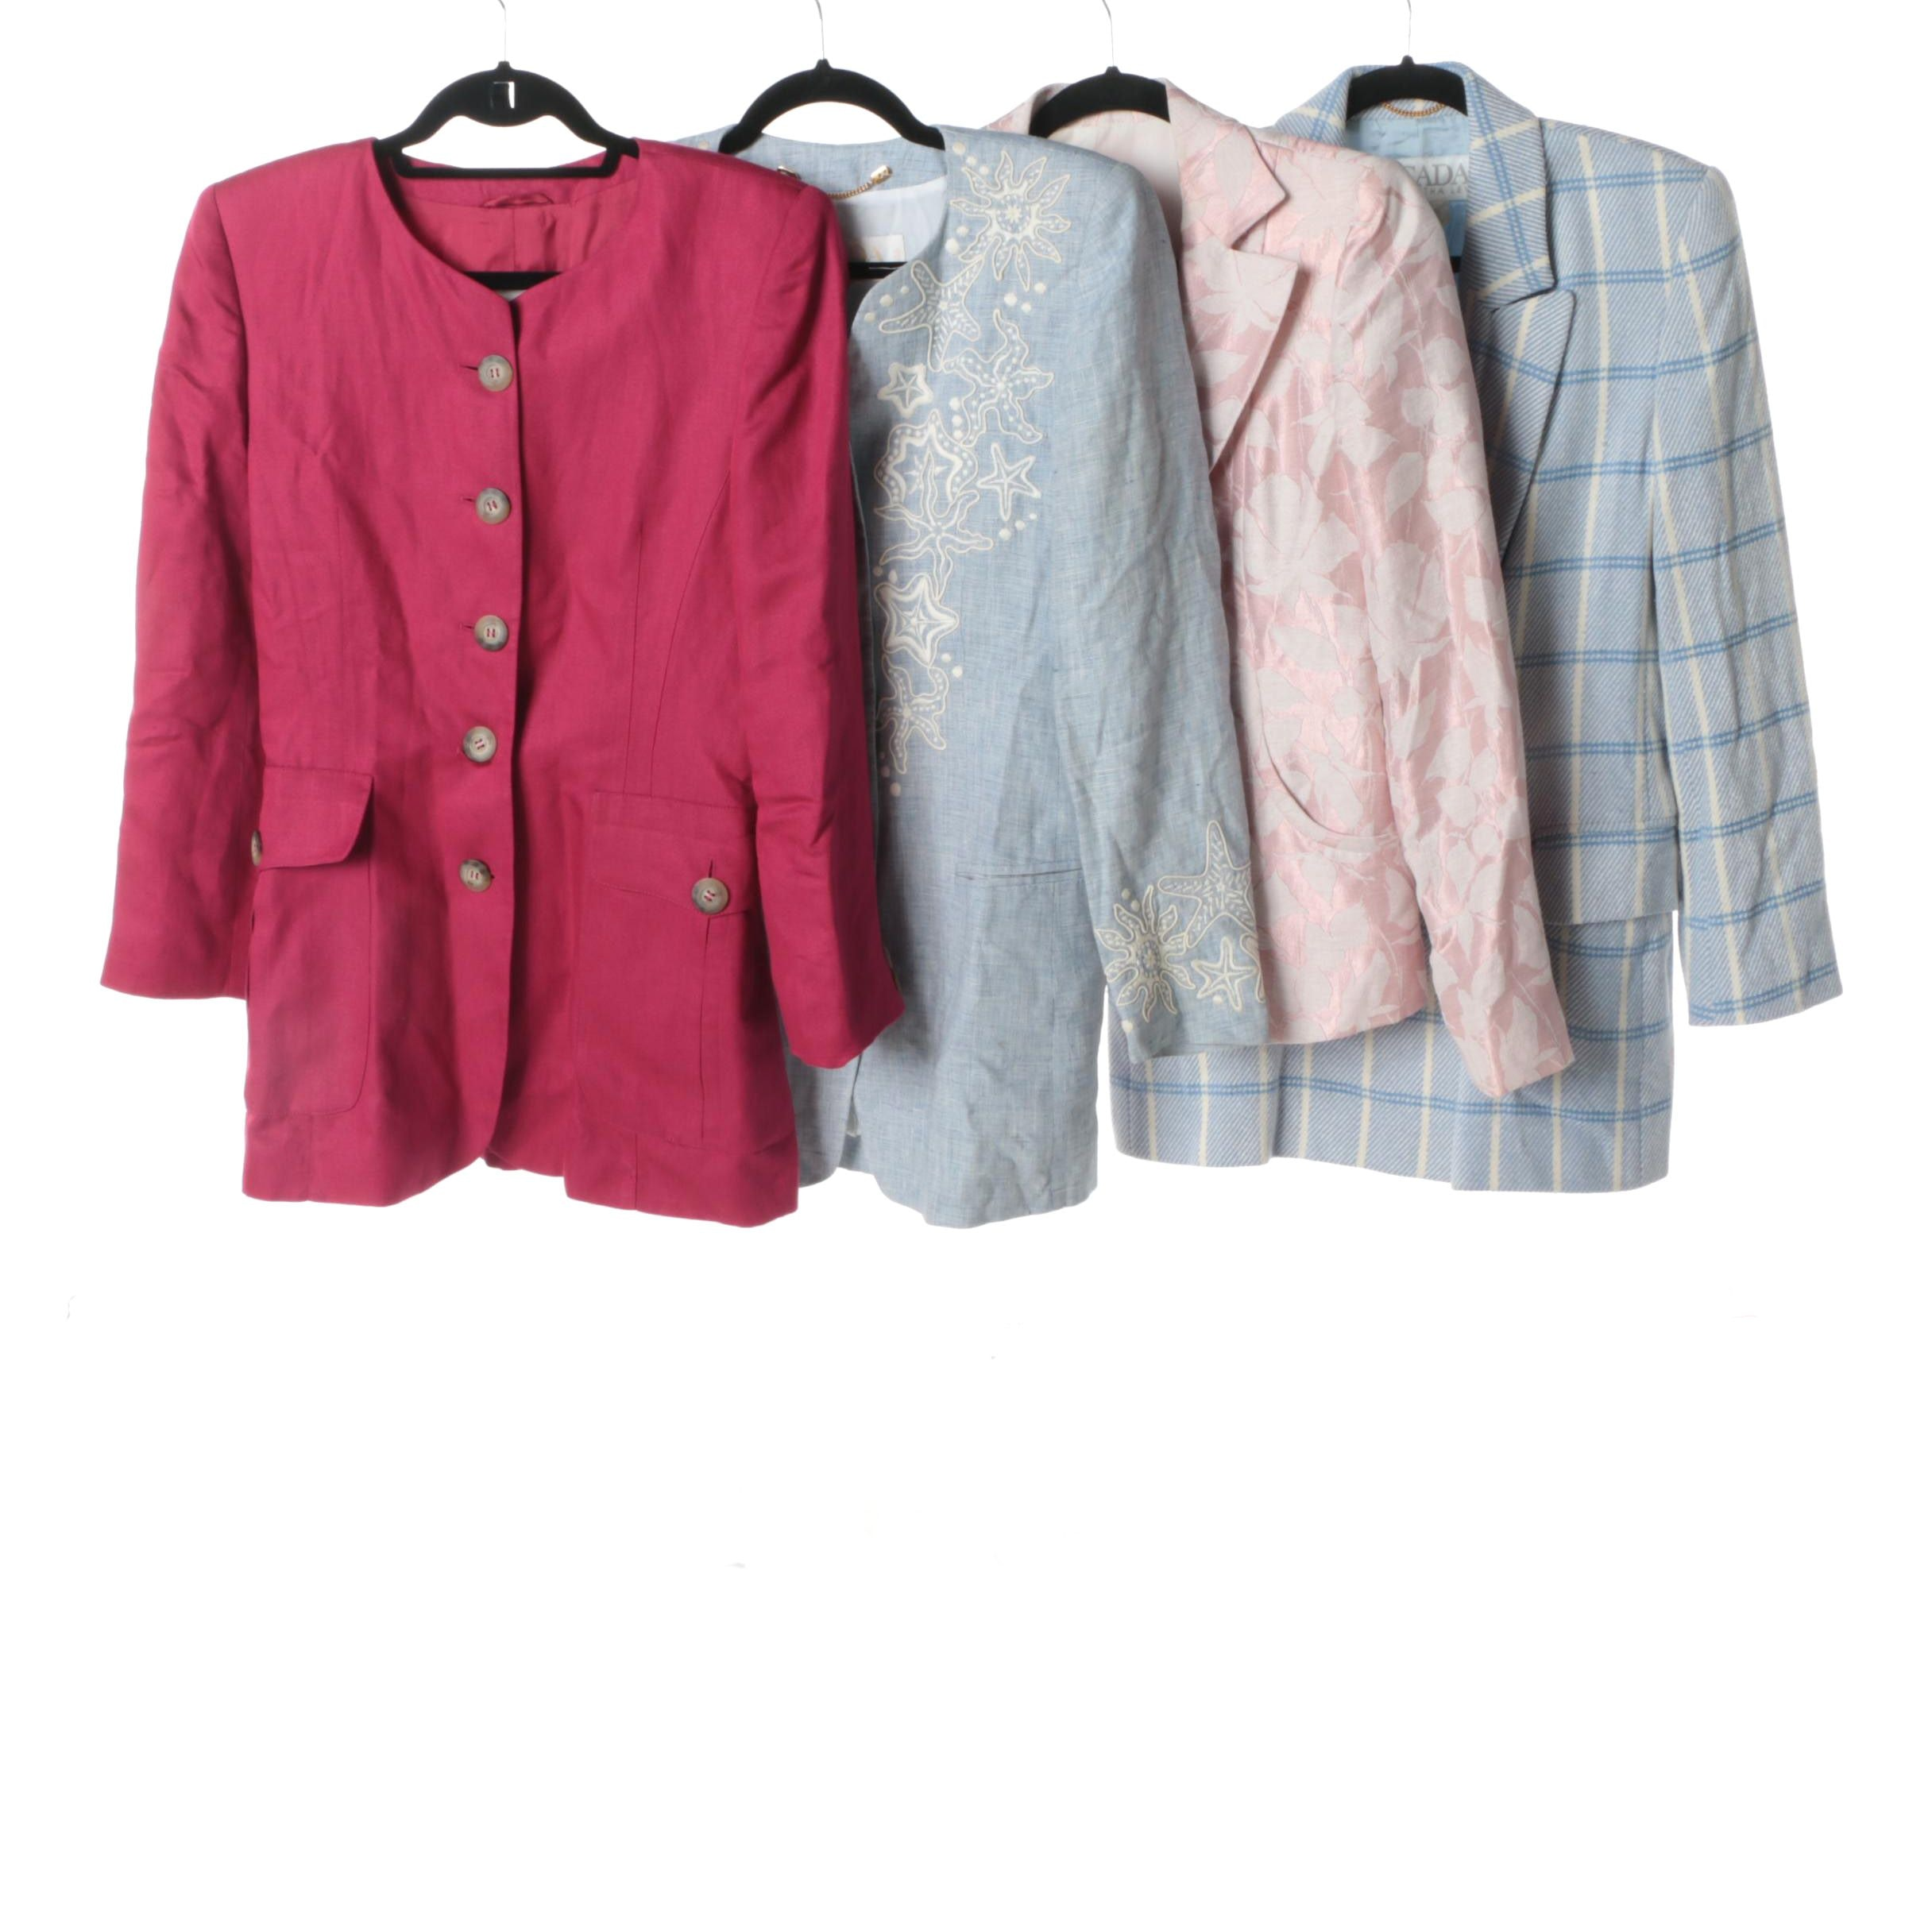 Women's Armani Collezioni, Escada Margaretha Ley and Laurèl Jackets